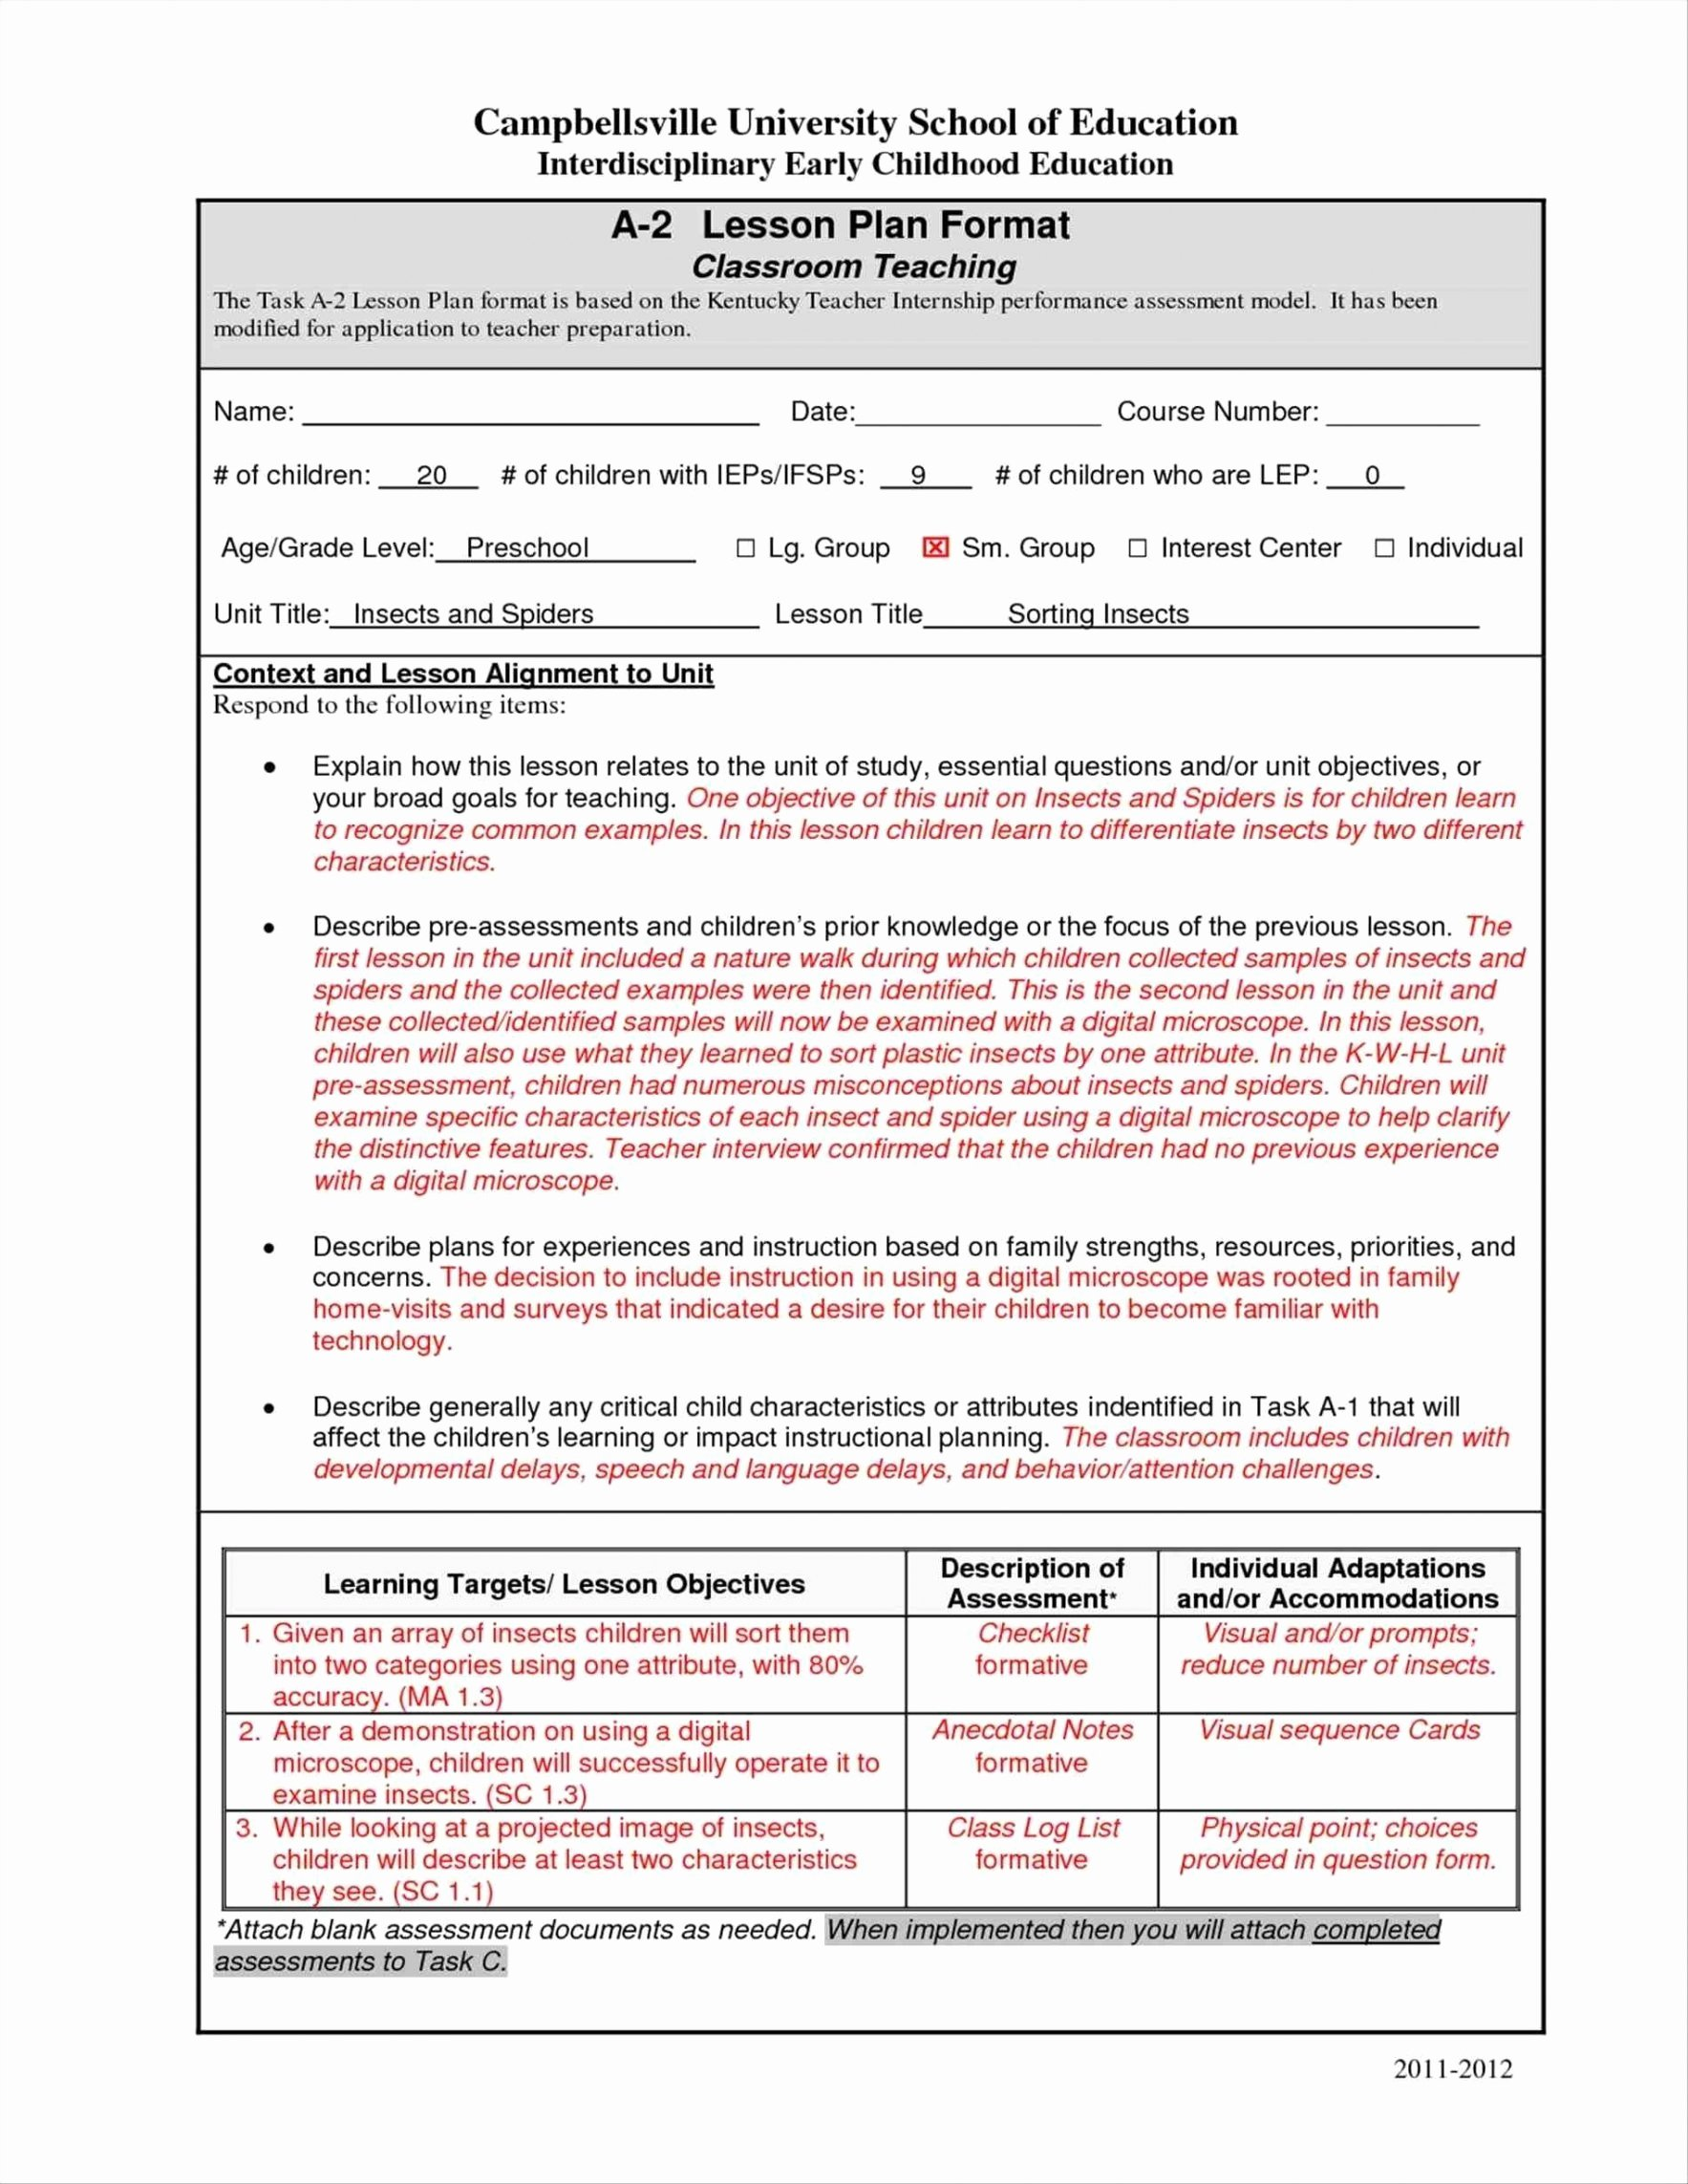 Early Childhood Lesson Plan Template Awesome Edtpa Task One Lesson Planning Template Early Childhood